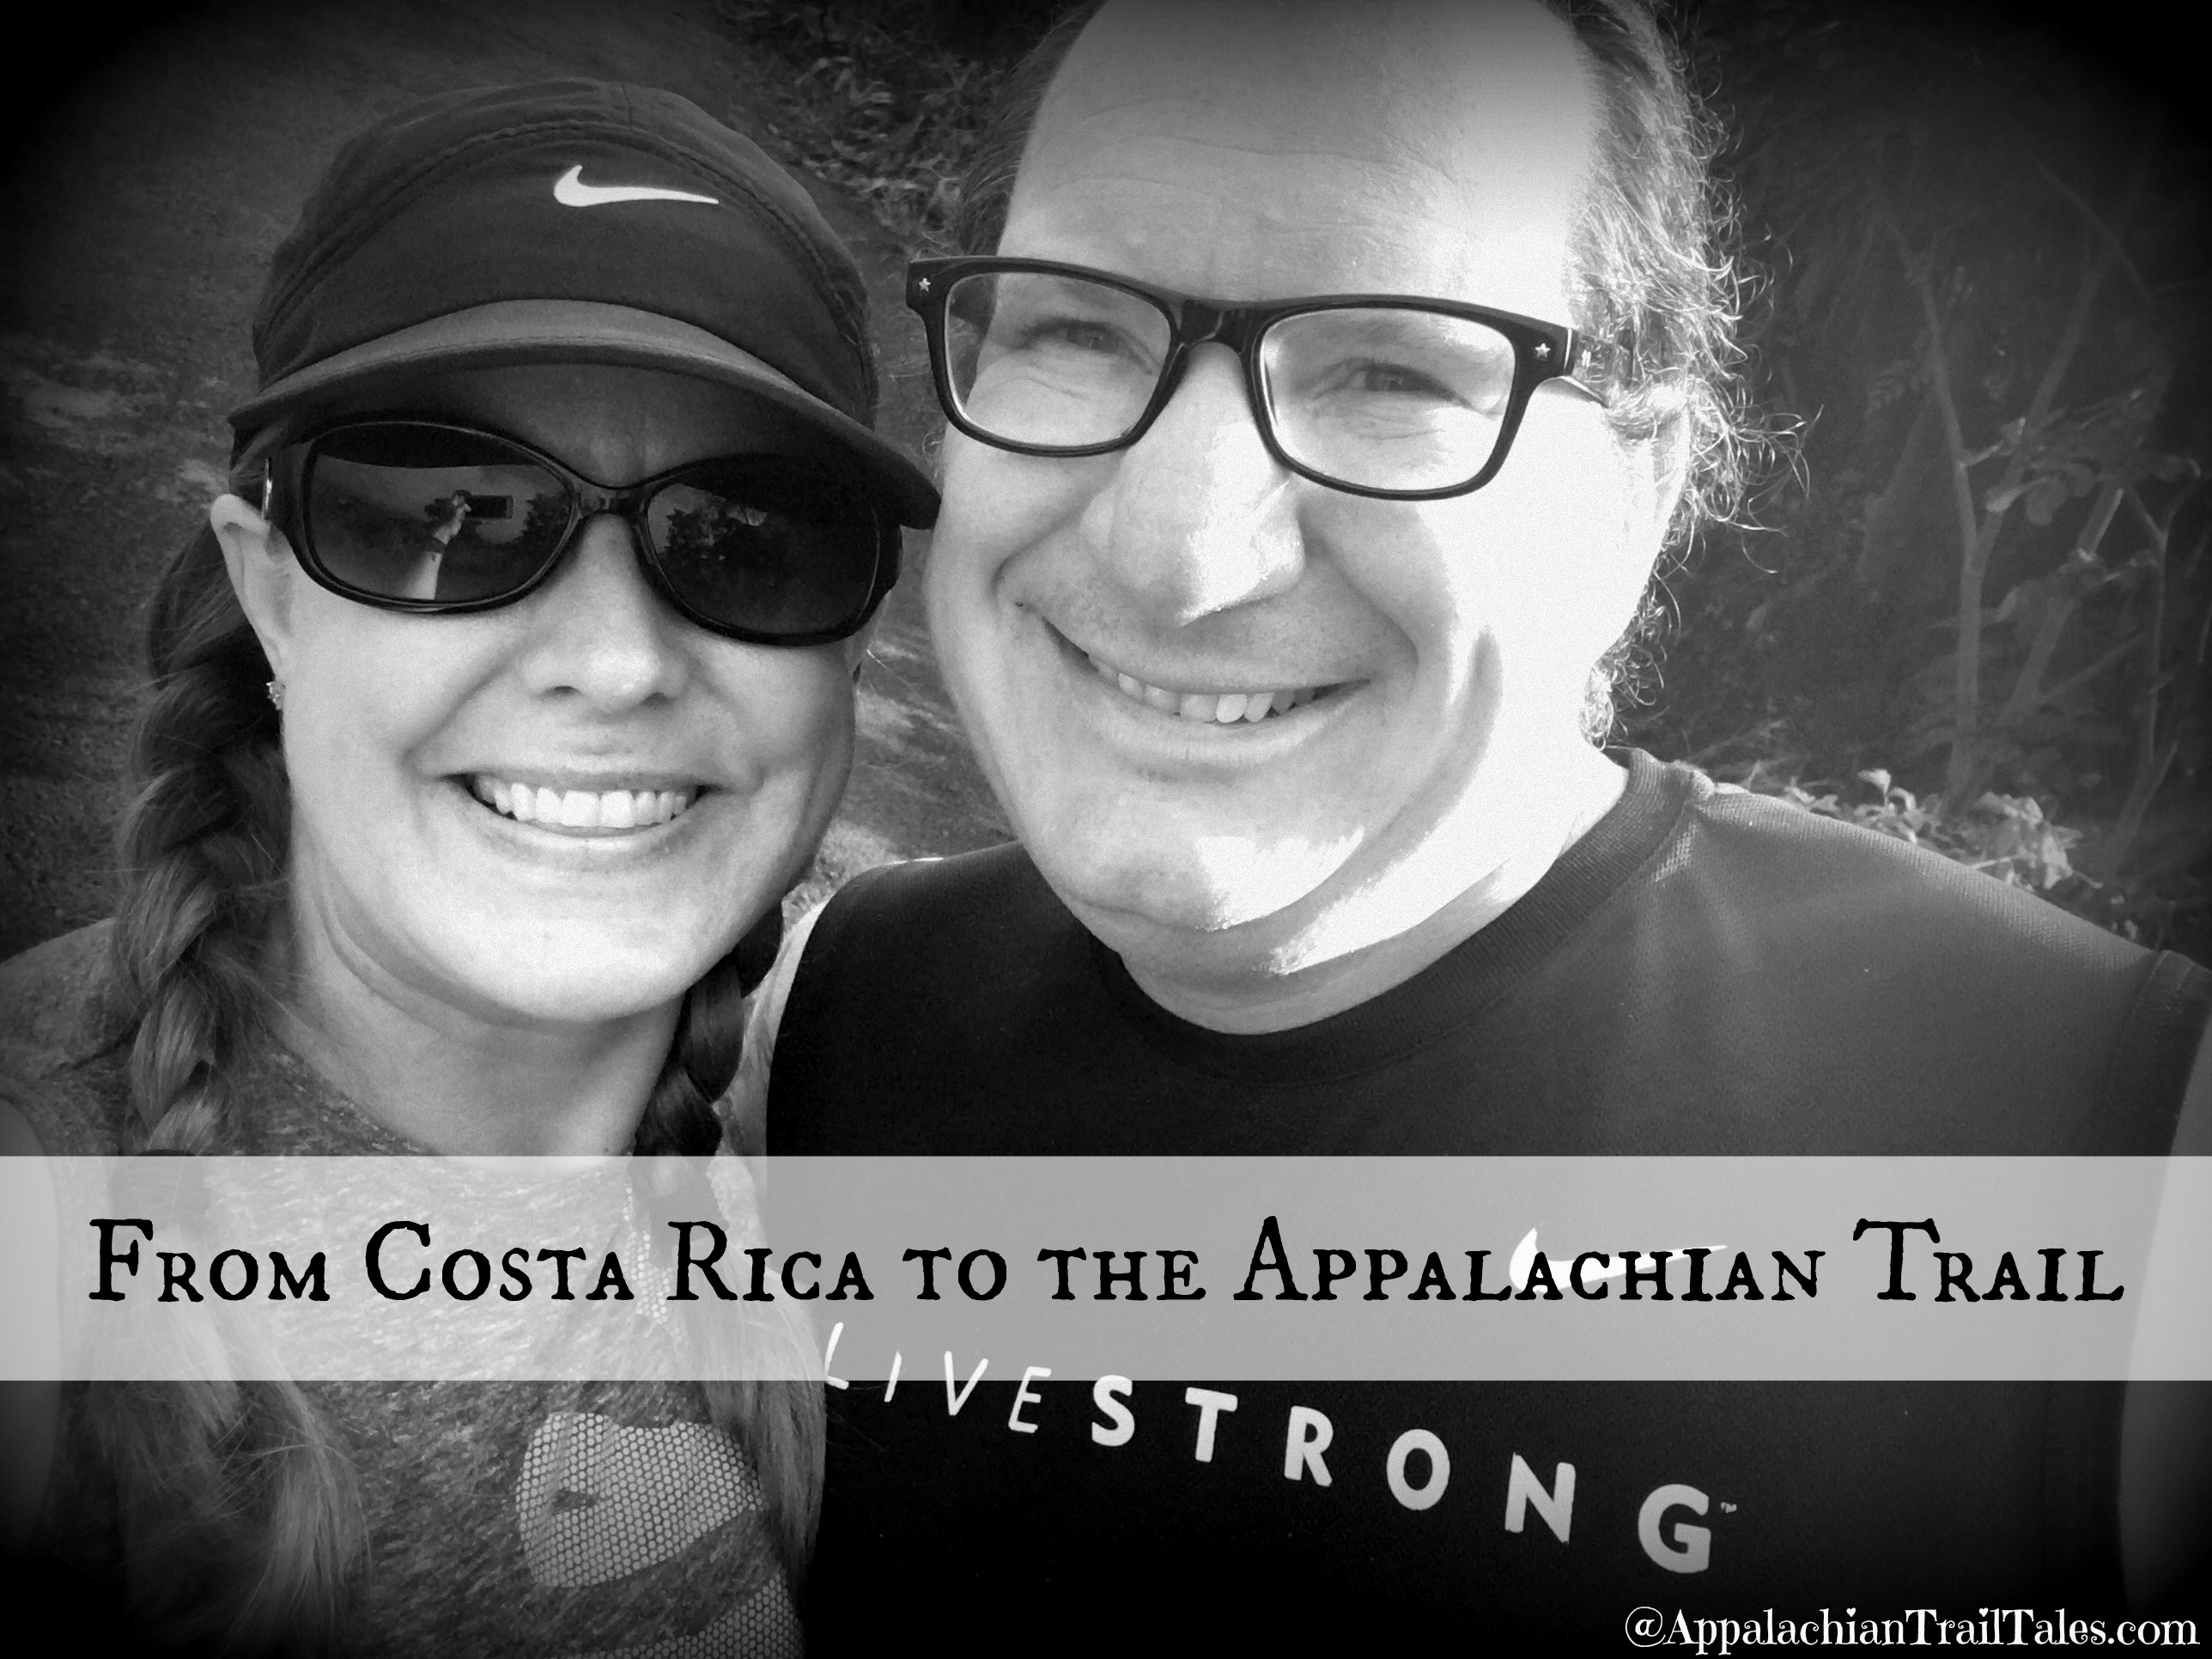 From Costa Rica to the Appalachian Trail